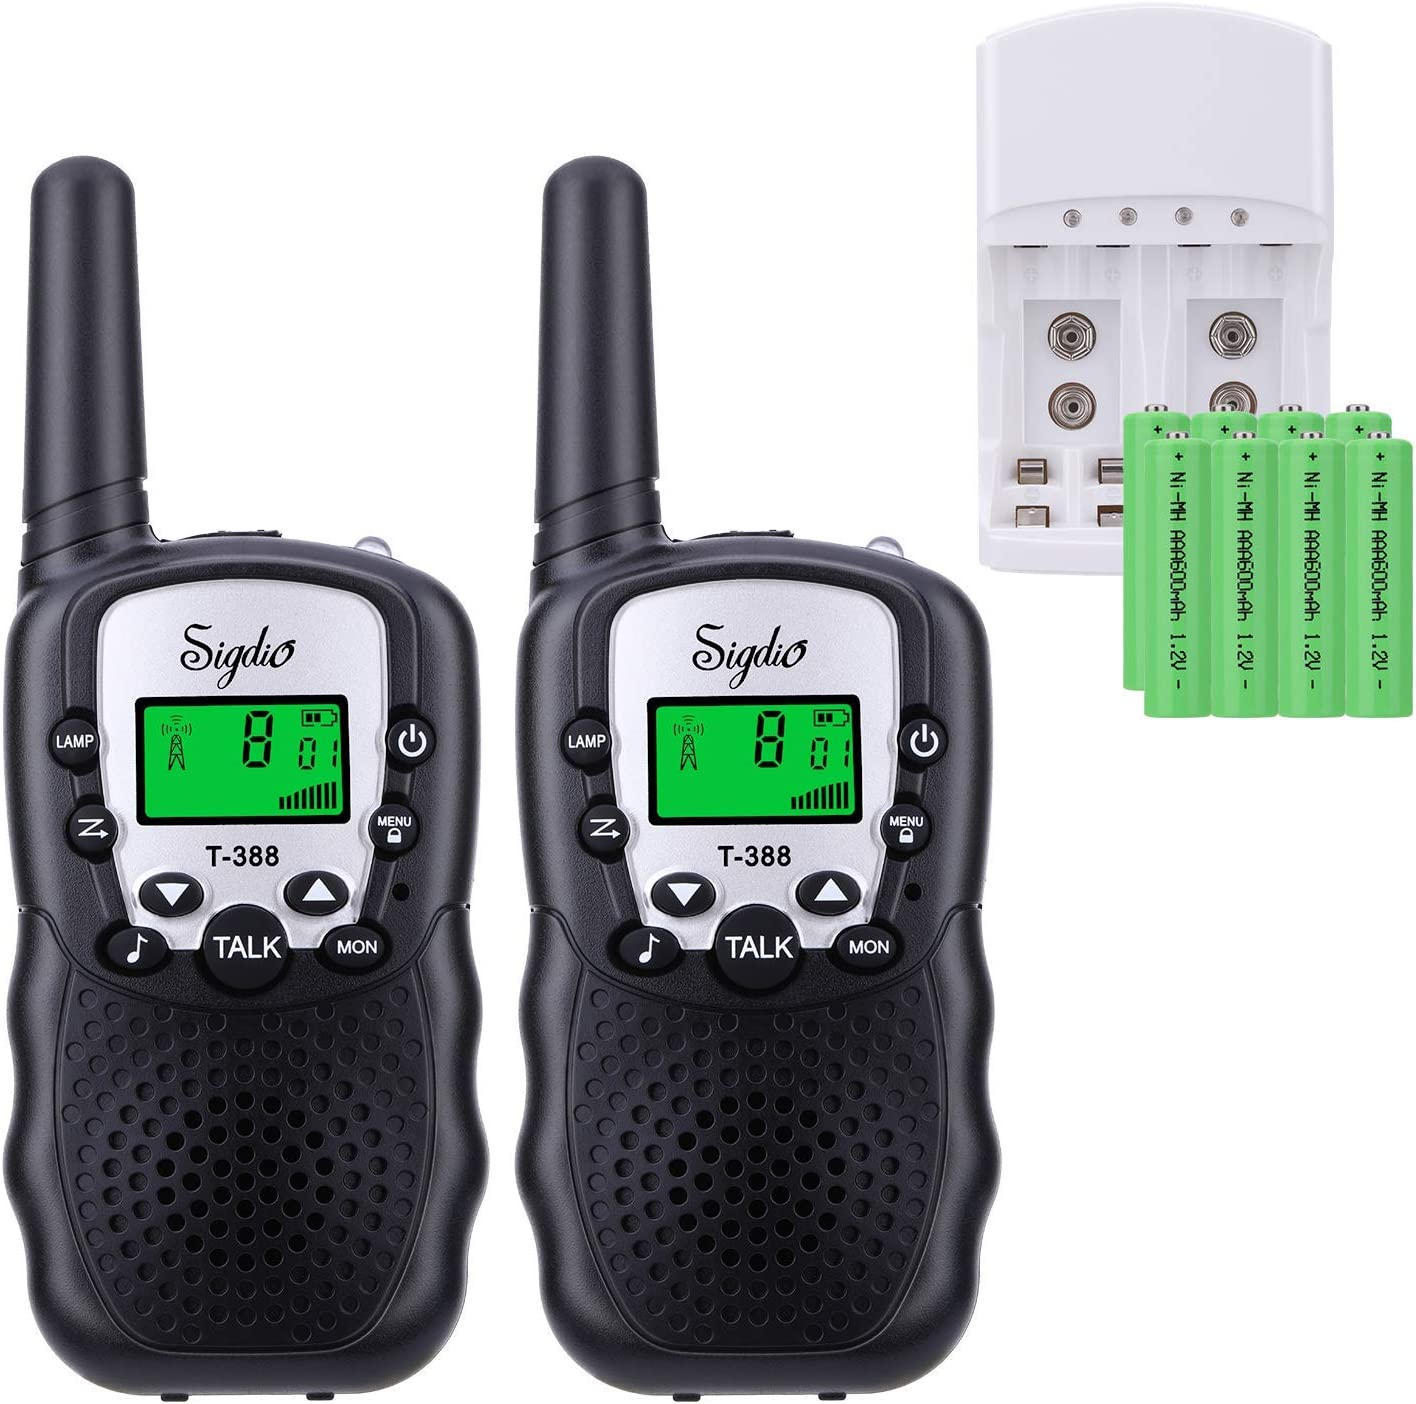 Sigdio Kids Walkie Talkies Rechargeable Walky Talky 22CH FRS 2 Way Radio Kids Toy with Multi-Charger Rechargeable Batteries VOX and Torch (Black, 8 rechargeable batteries)